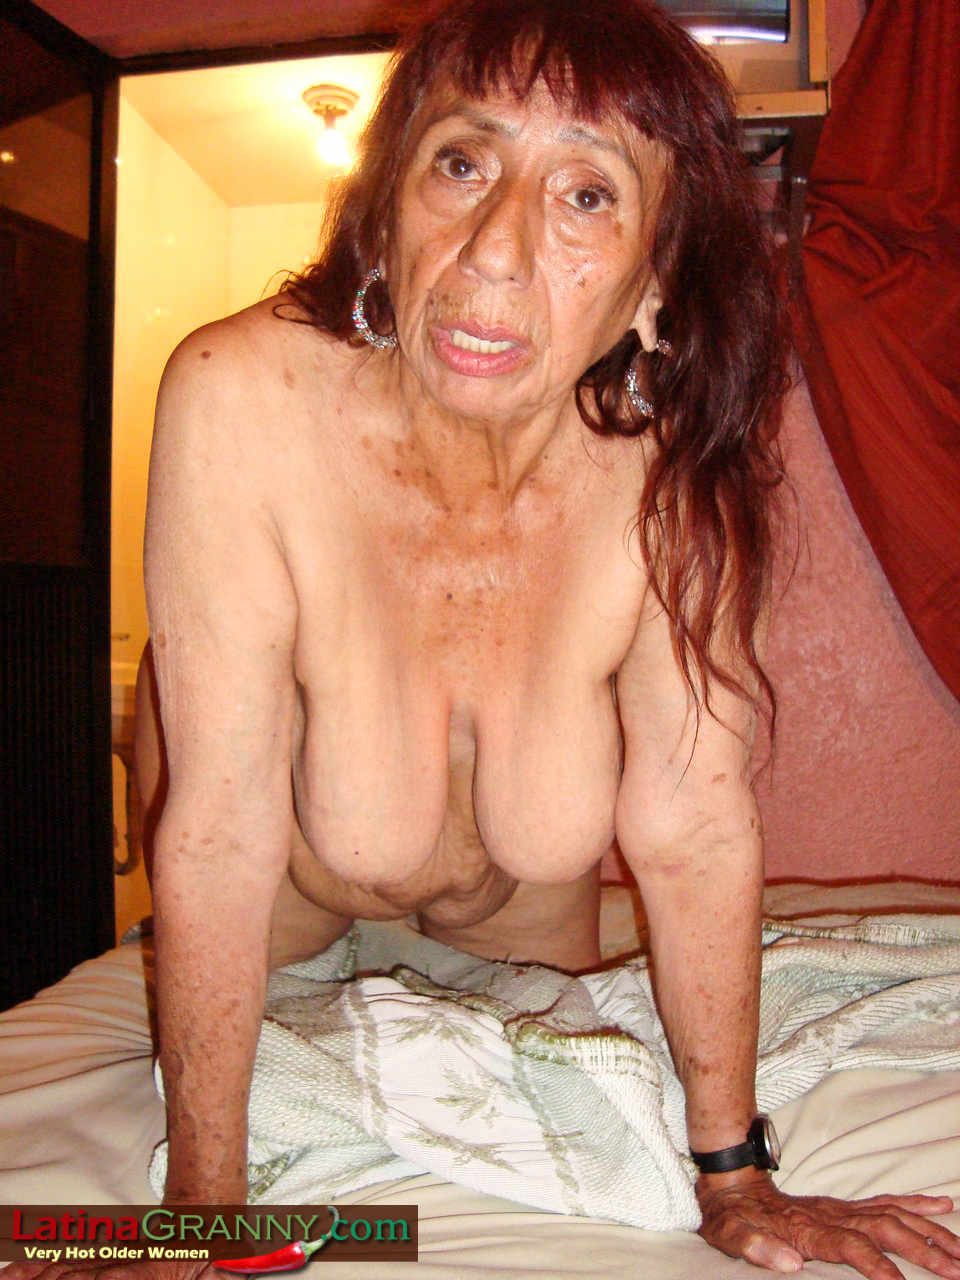 Latina granny pictures